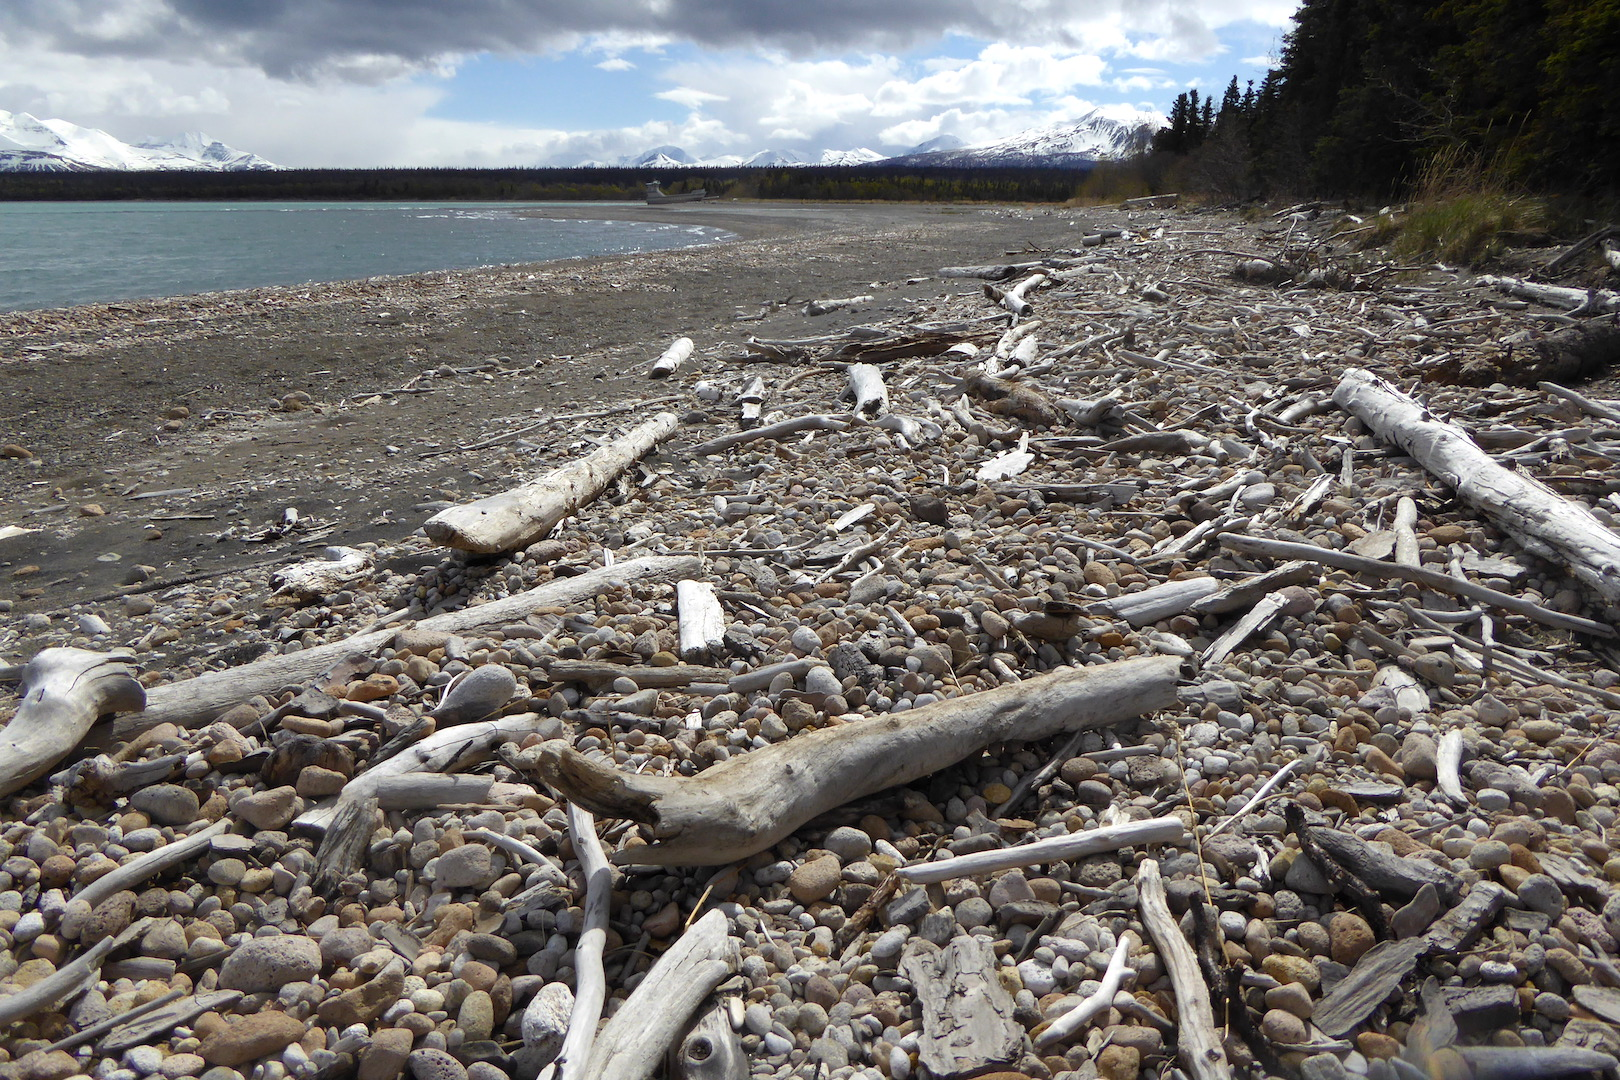 pumice and driftwood covered beach. Lakeshore is at left. Trees and grass at right. Snow covered mountains on